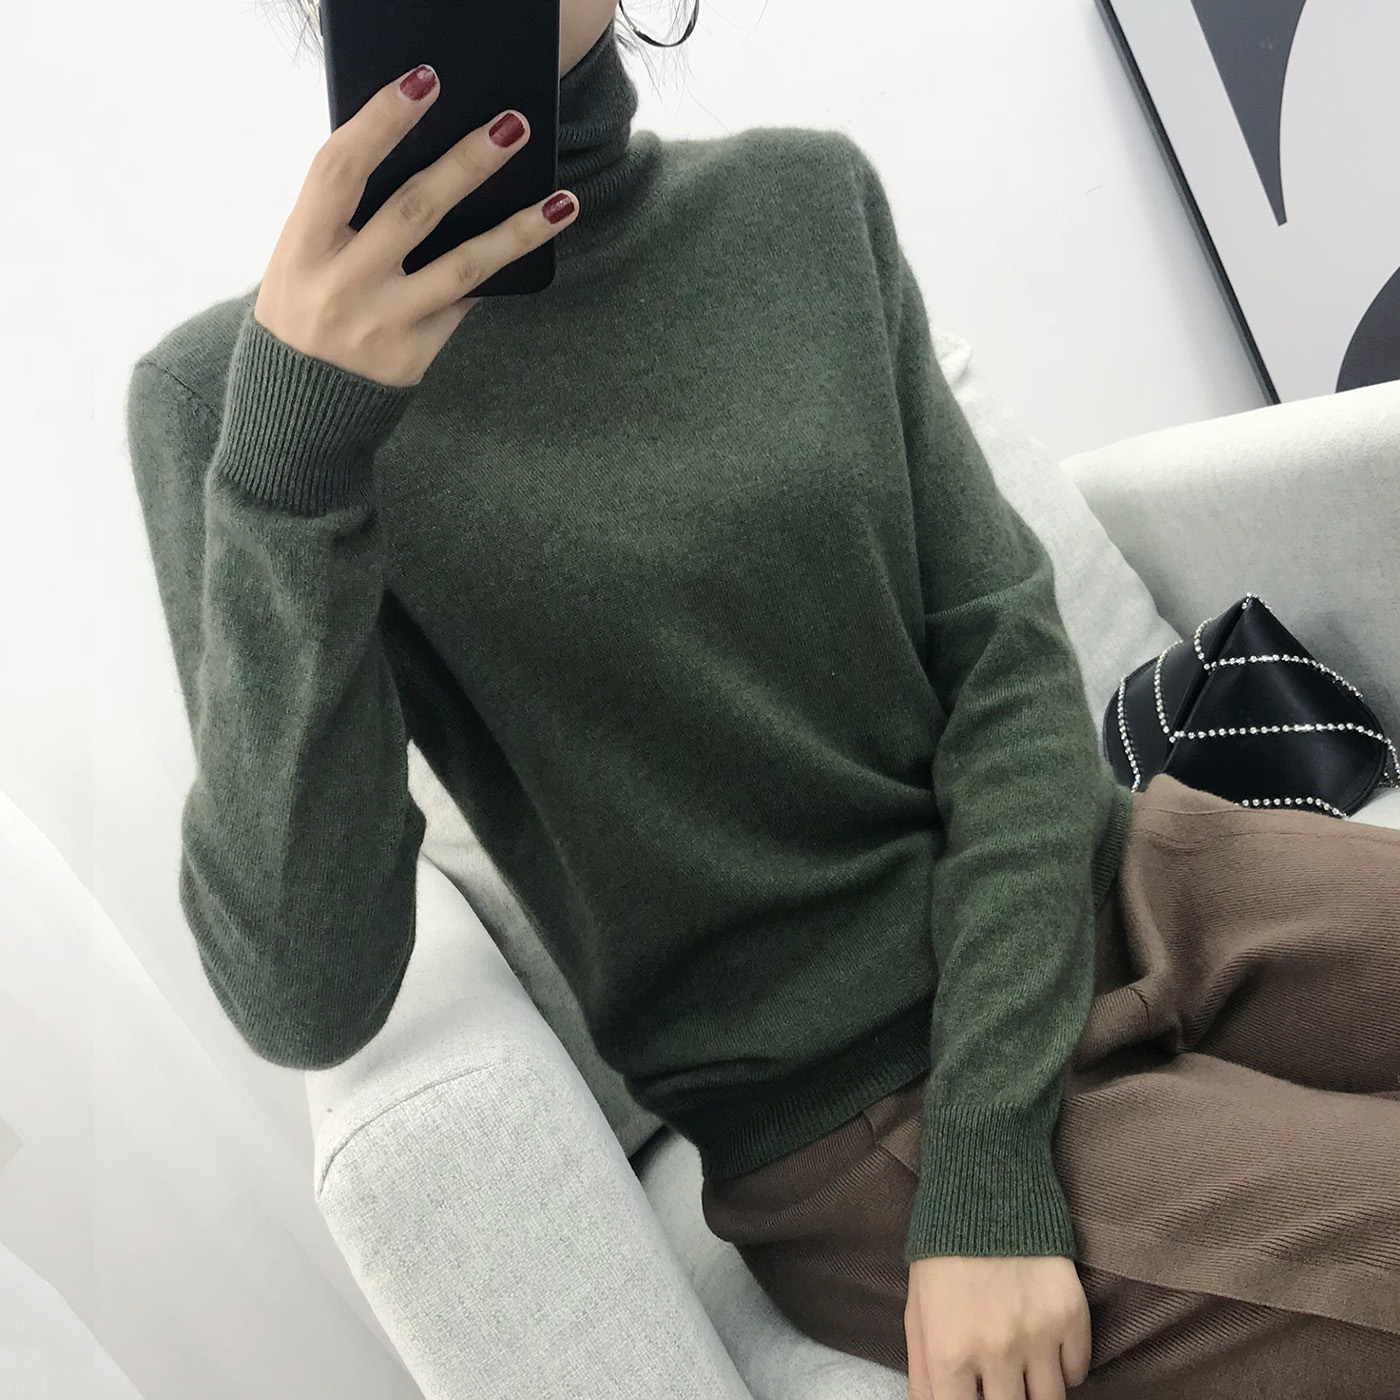 2020 Cashmere Sweater Women Turtleneck Women's Knitted Turtleneck Winter Cashmere Sweater For Women Warm Sweaters Female